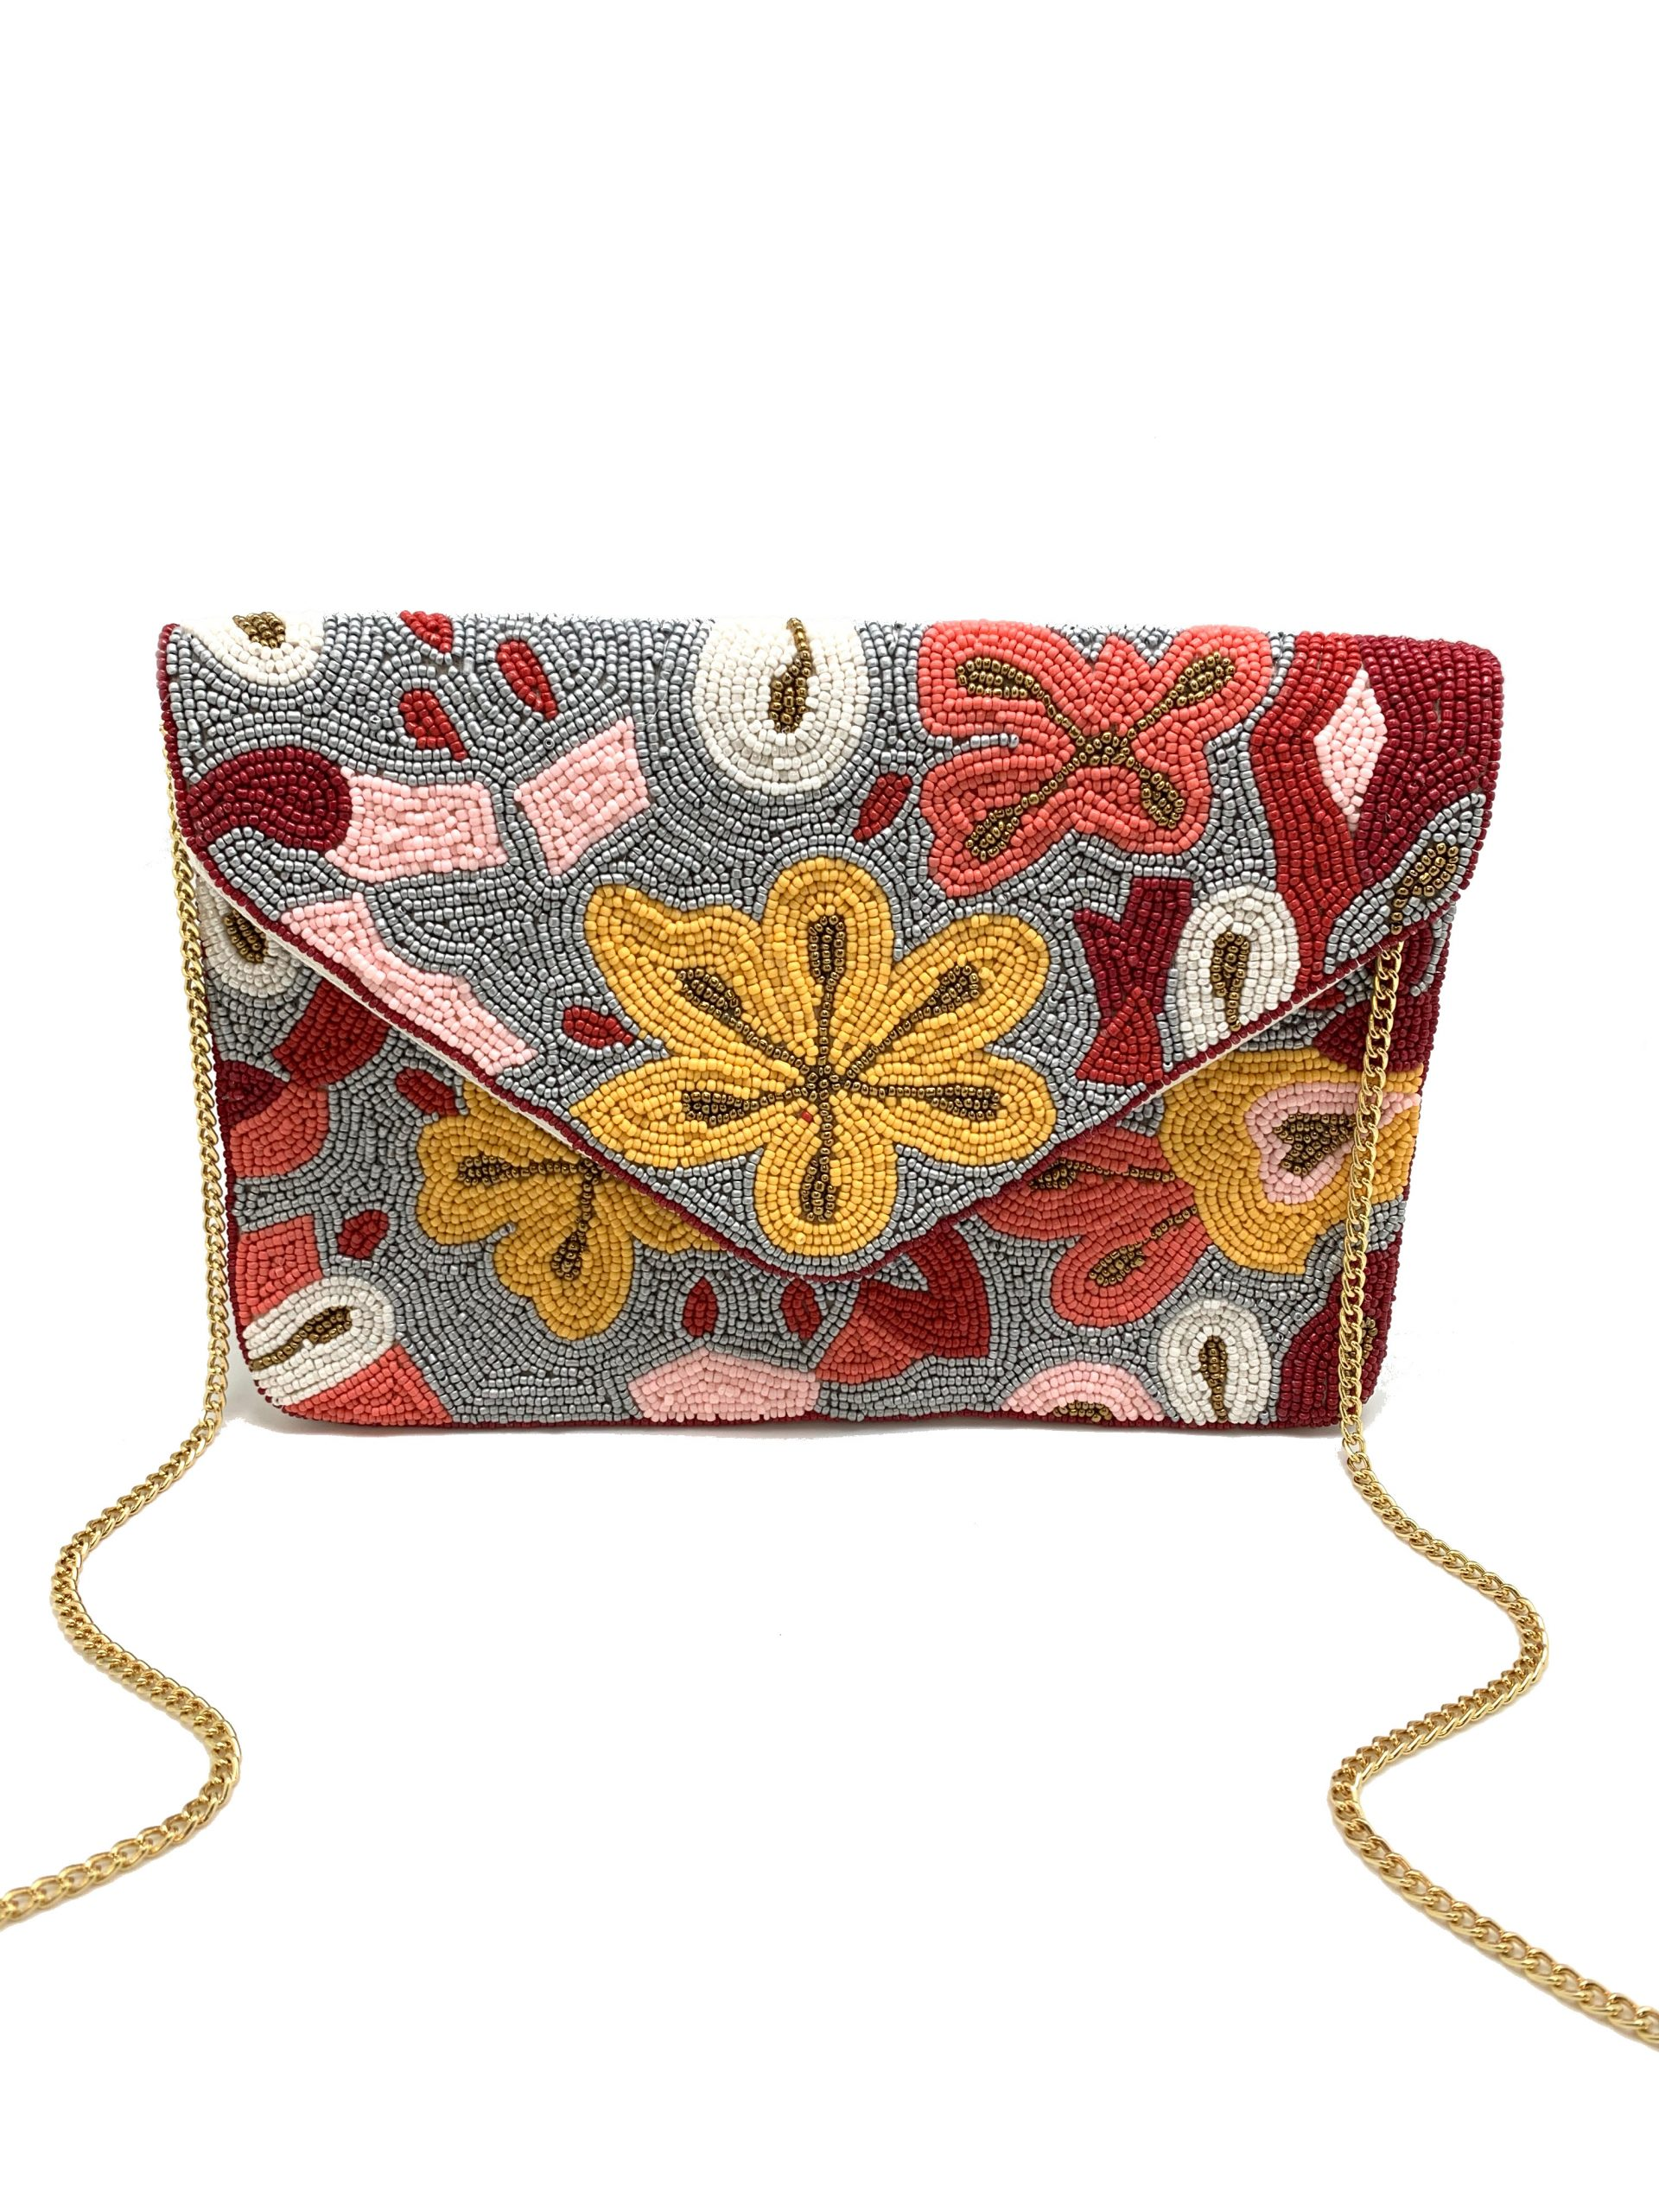 BEADED MULTI FLORAL CLUTCH